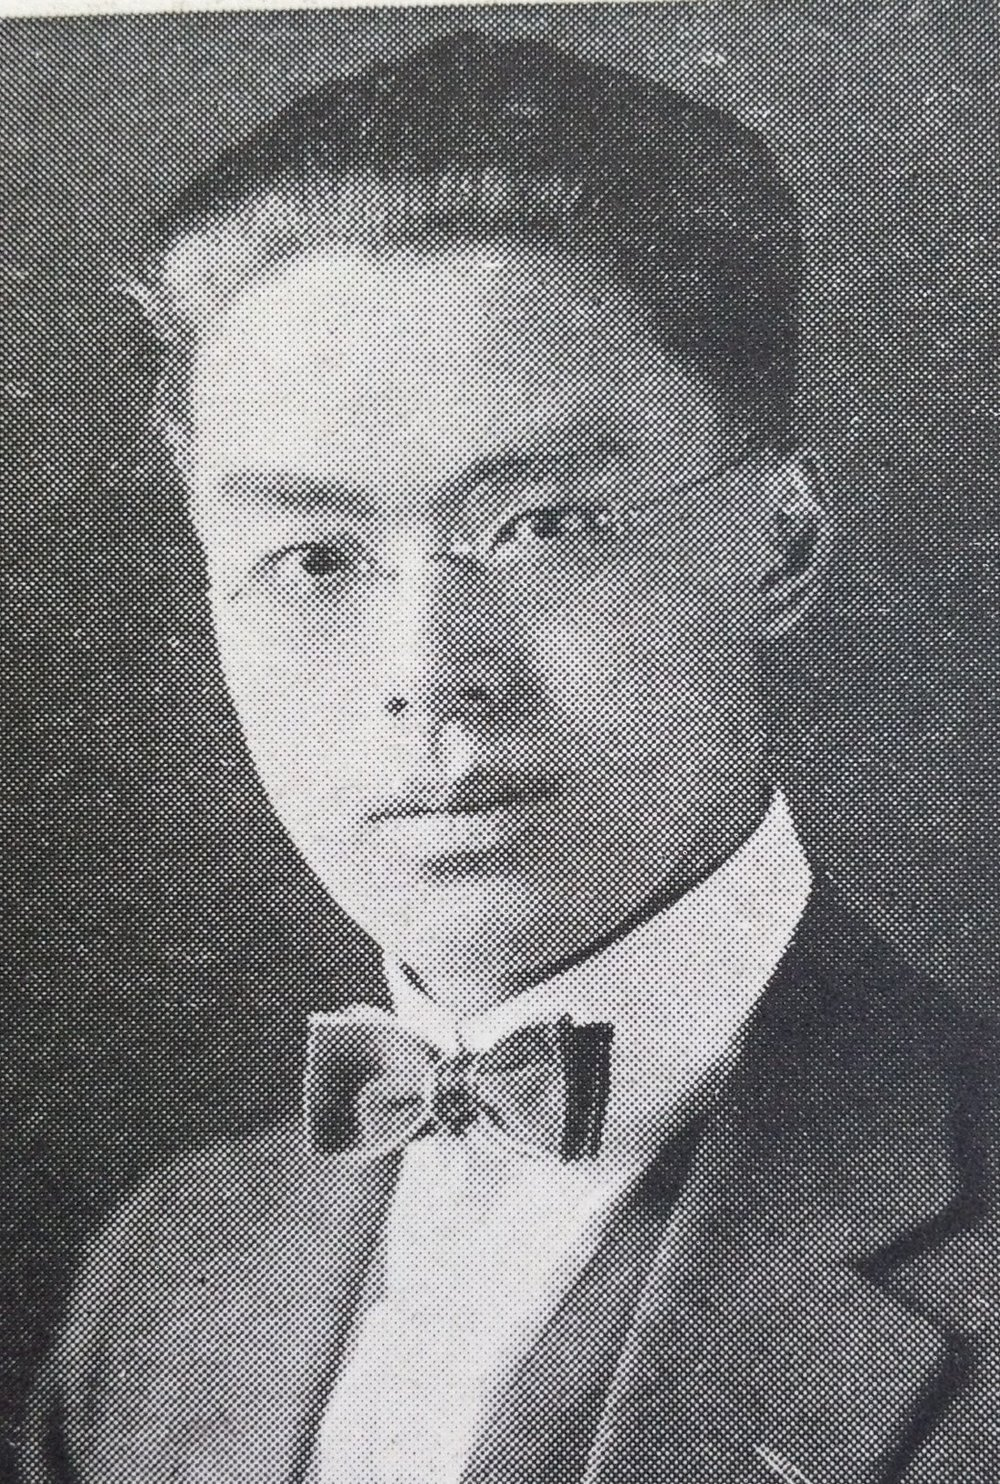 PY Tang senior photo.Technique 1924.  Courtesy MIT Archives and Special Collections.